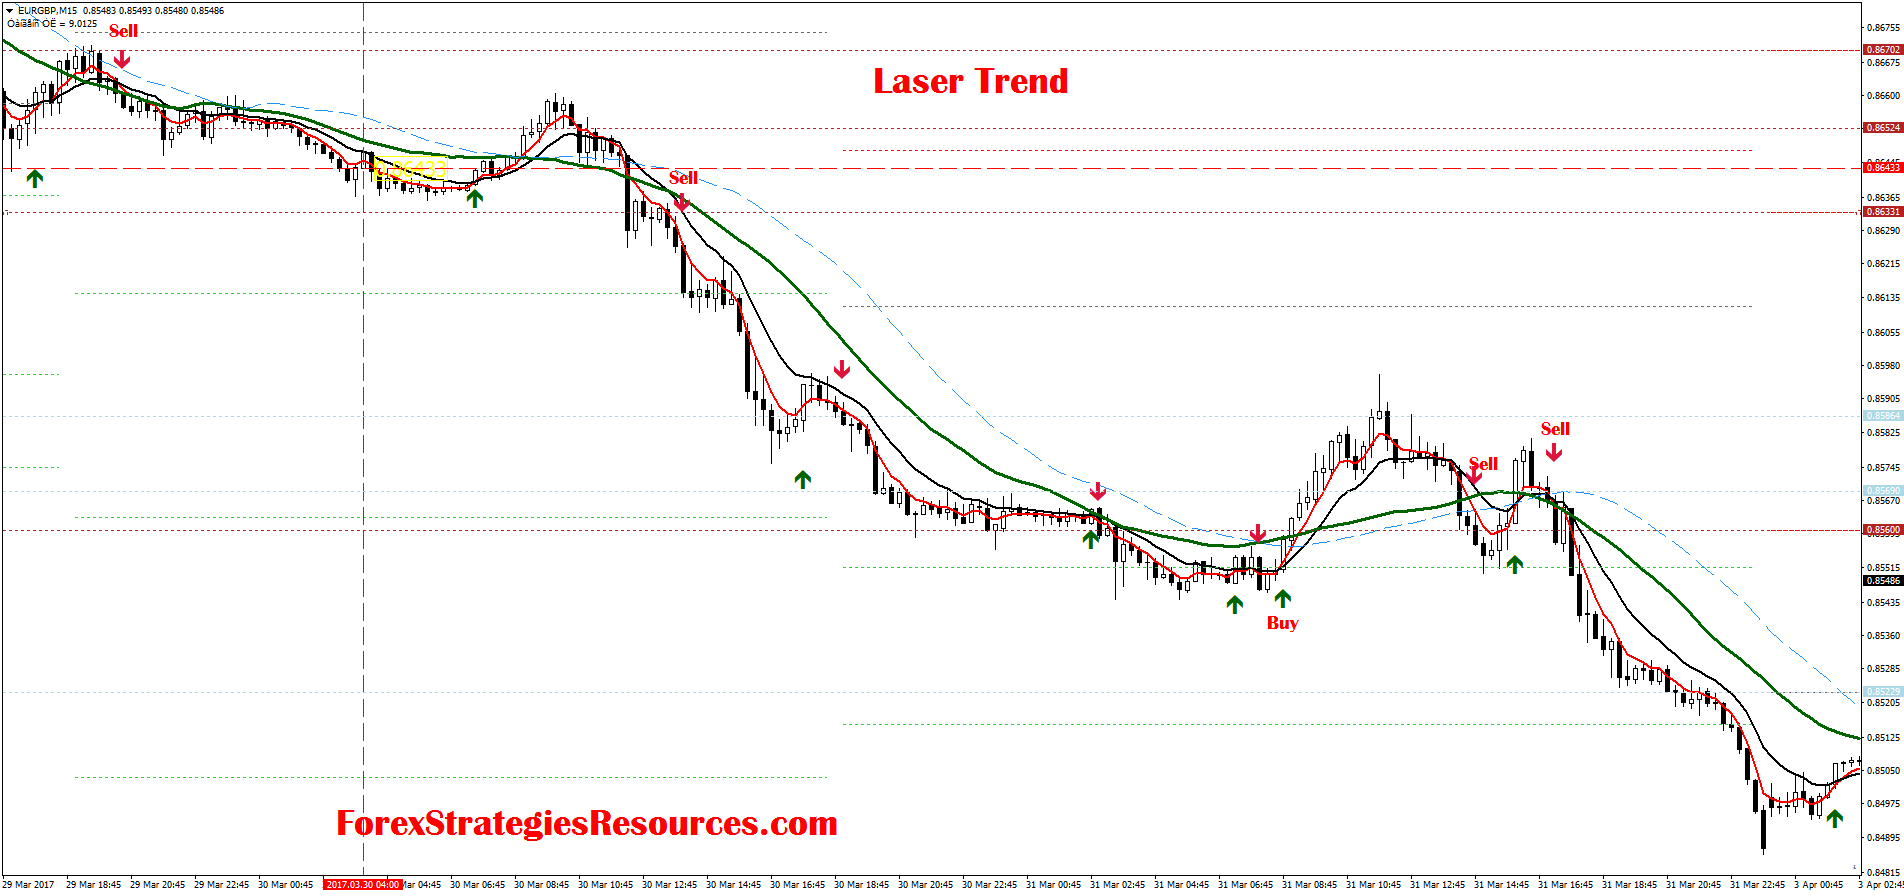 Laser Trend Forex Strategies Resources Trading 85483 01 Wiring Diagram Hunter 576